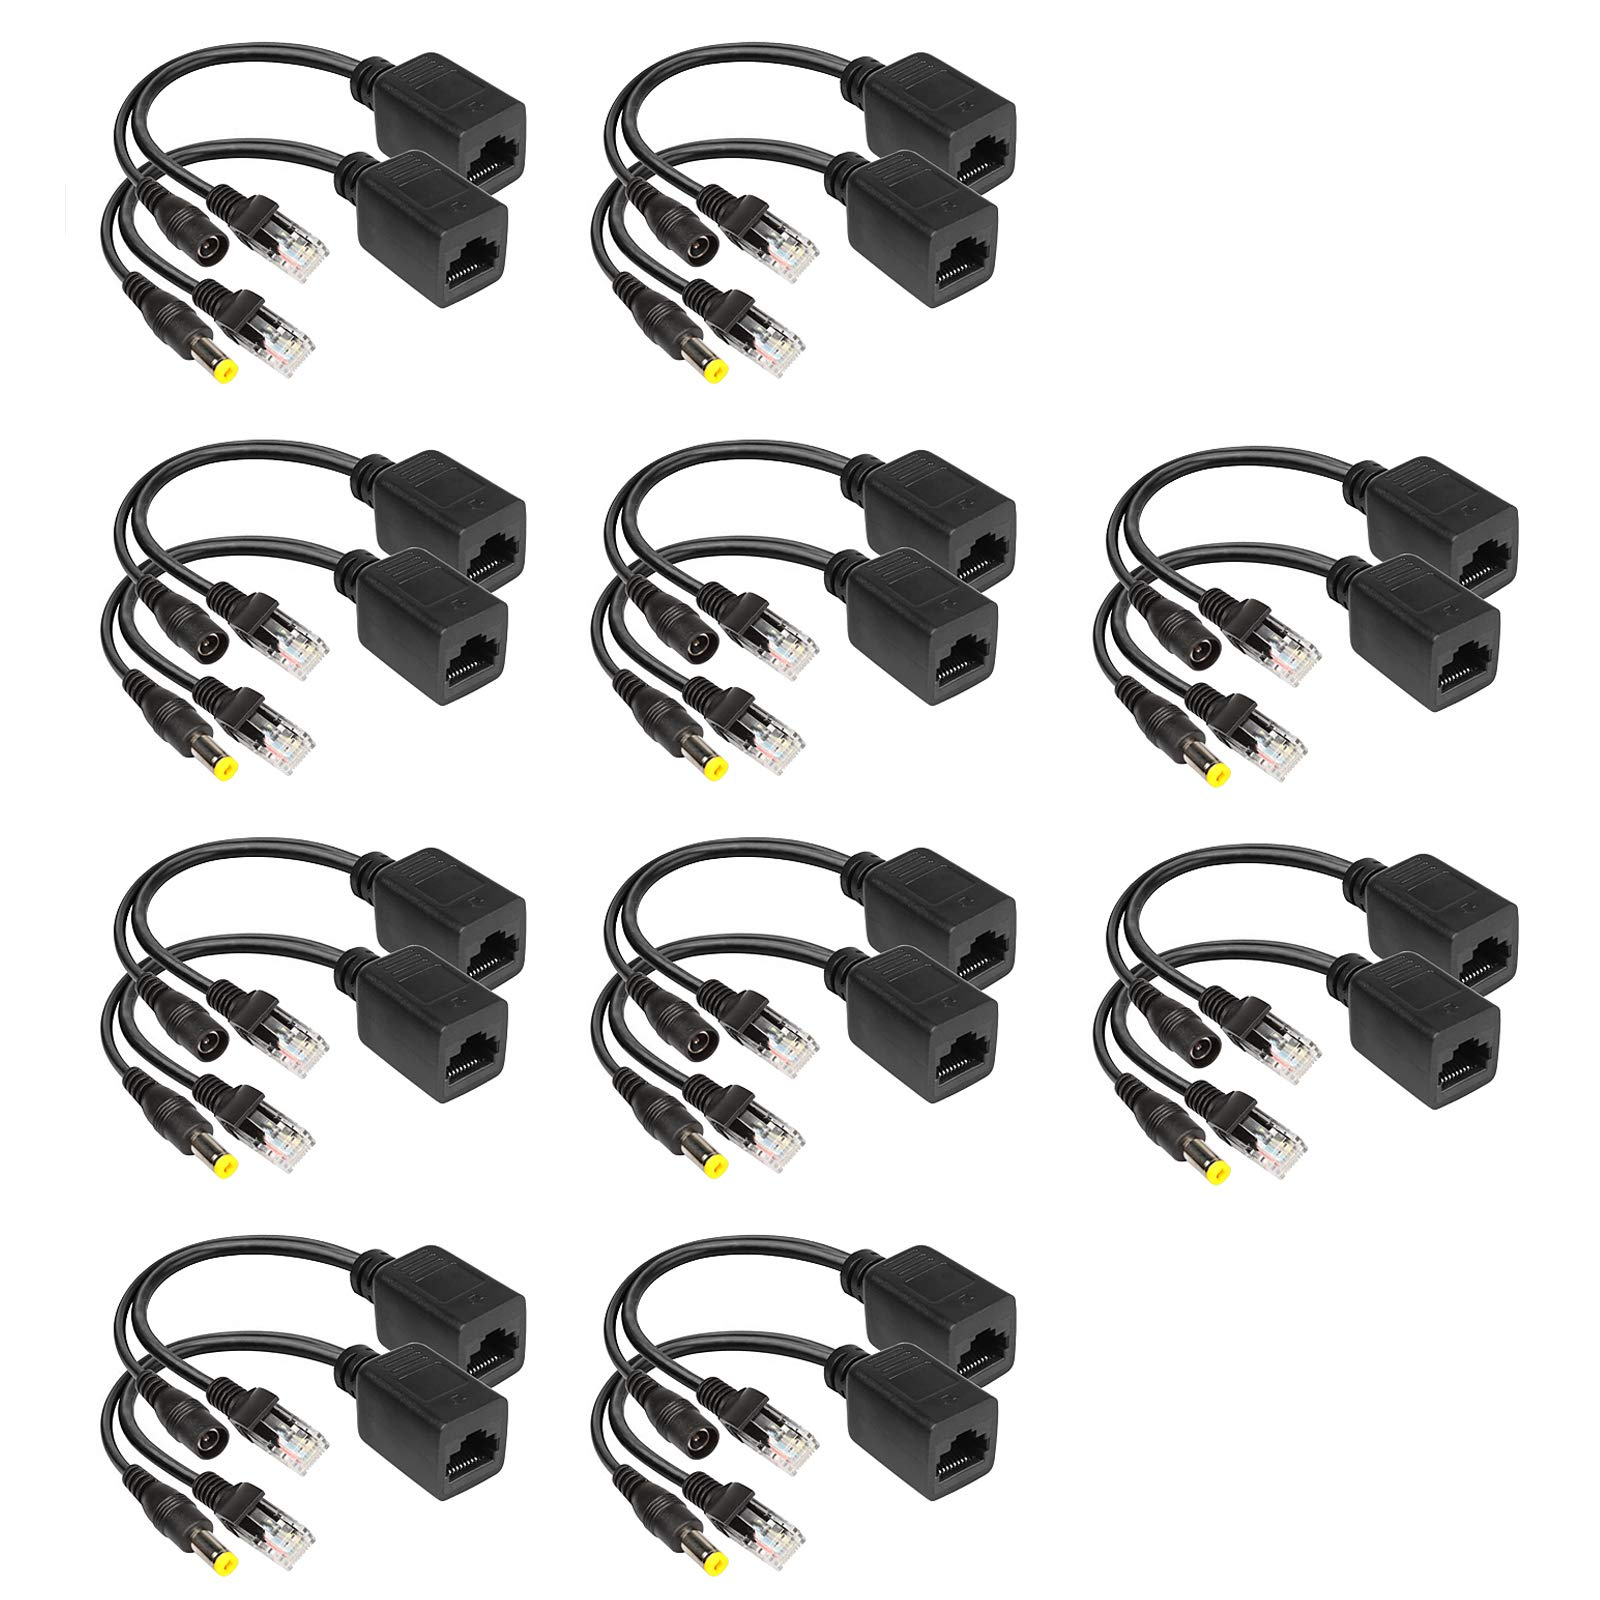 10 Pairs Passive PoE Over Ethernet Injector and Splitter Cable Kit with 5.5x2.1 mm DC Male and Female Connector for Network Digital Signal by eoere